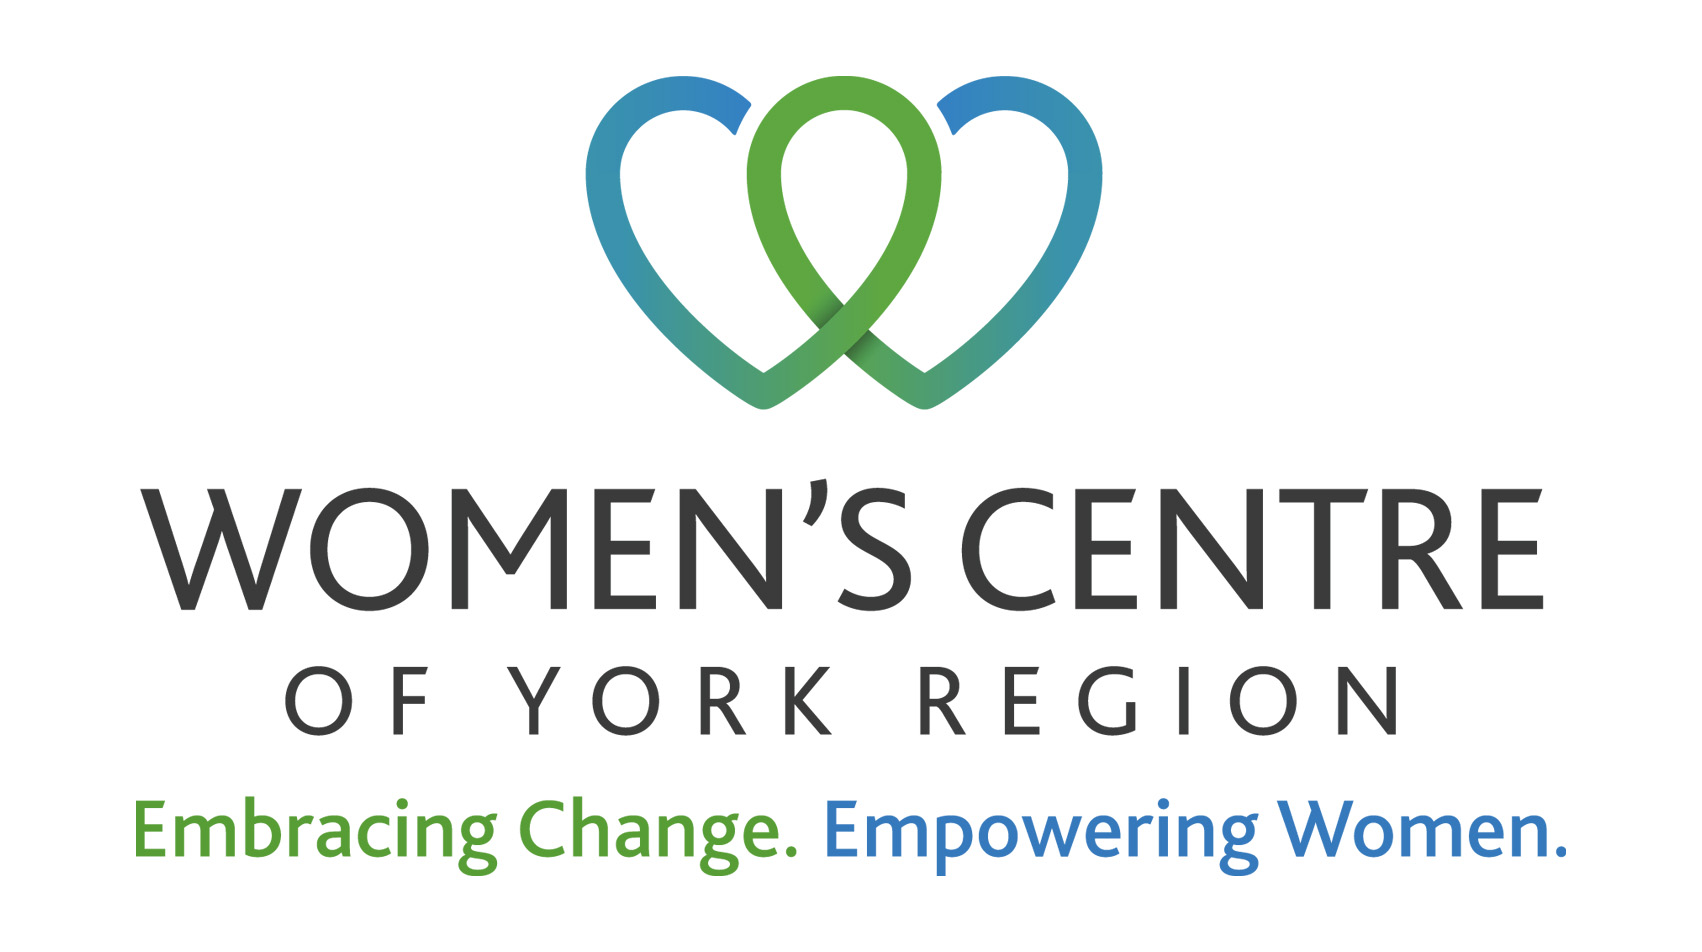 Women's Centre of York Region (WCYR)